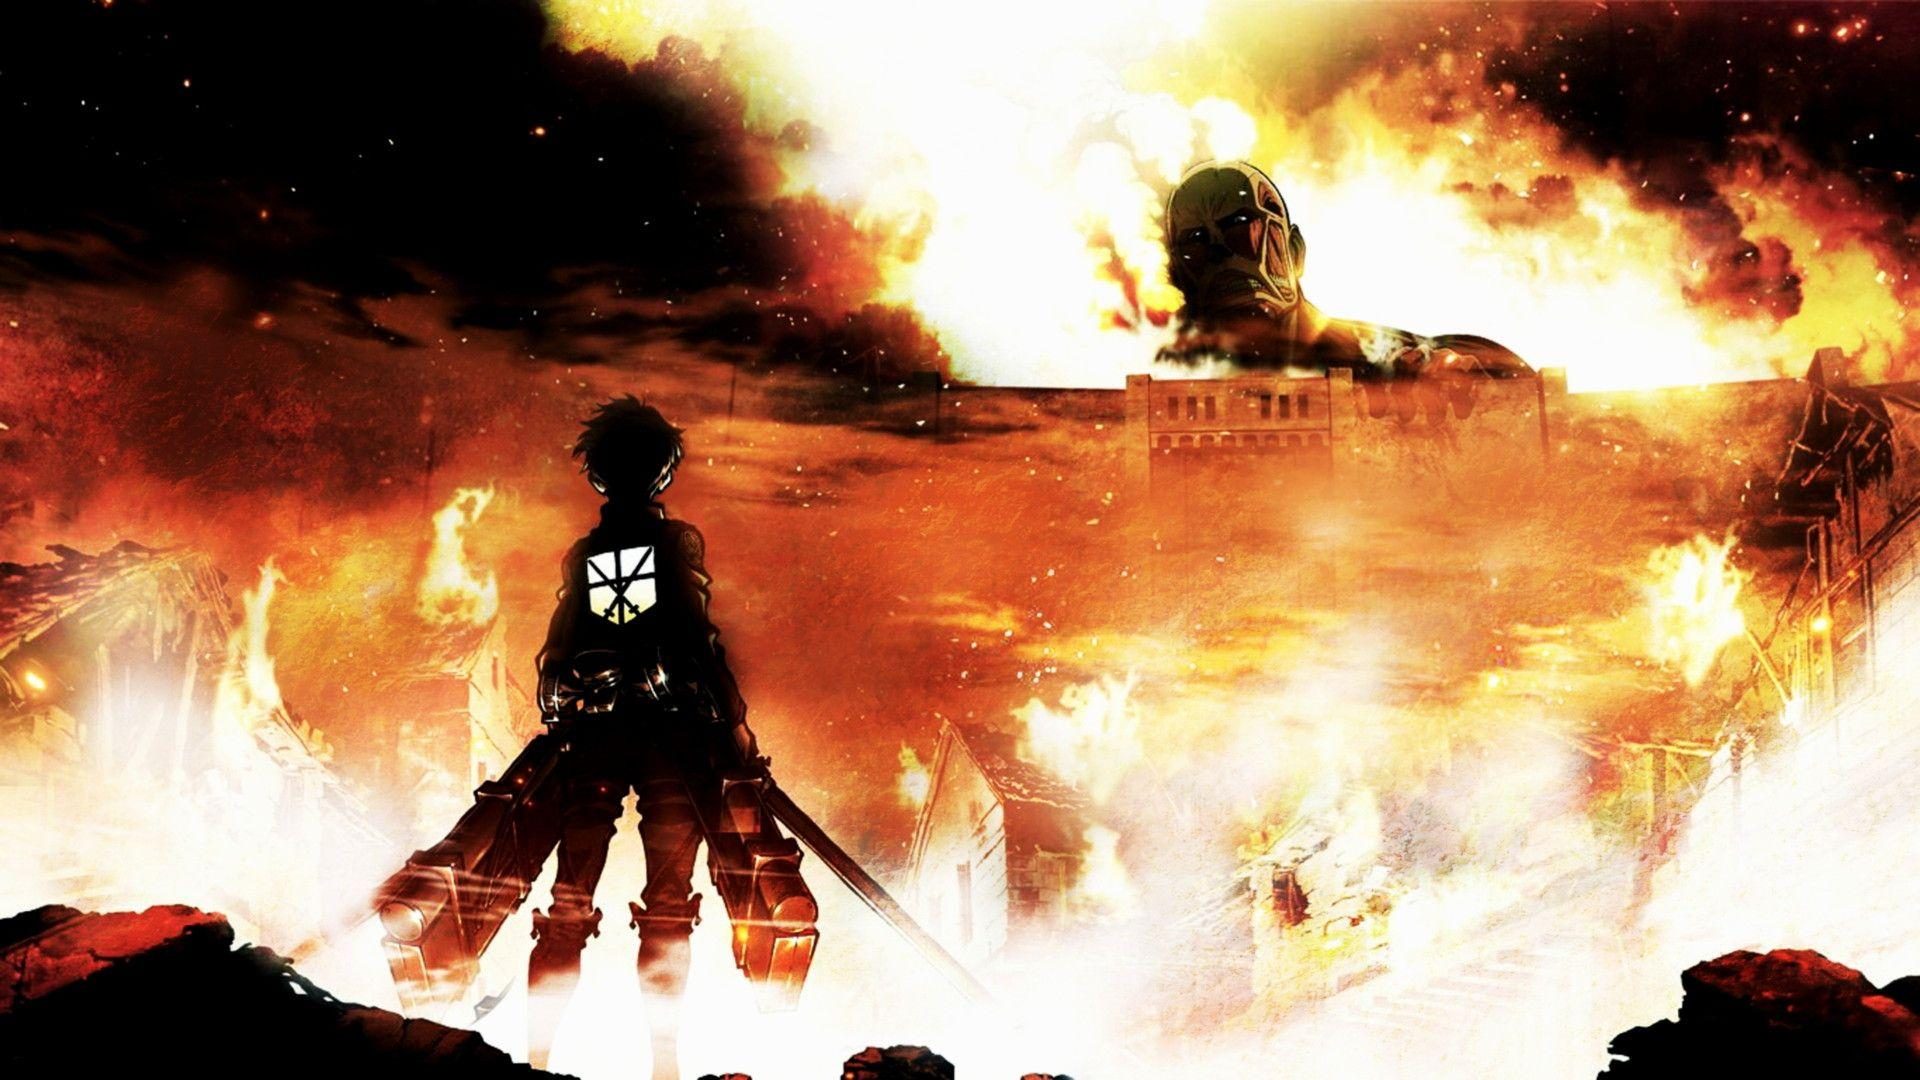 The wallpaper trend is going strong. Attack On Titan Wallpapers - Wallpaper Cave